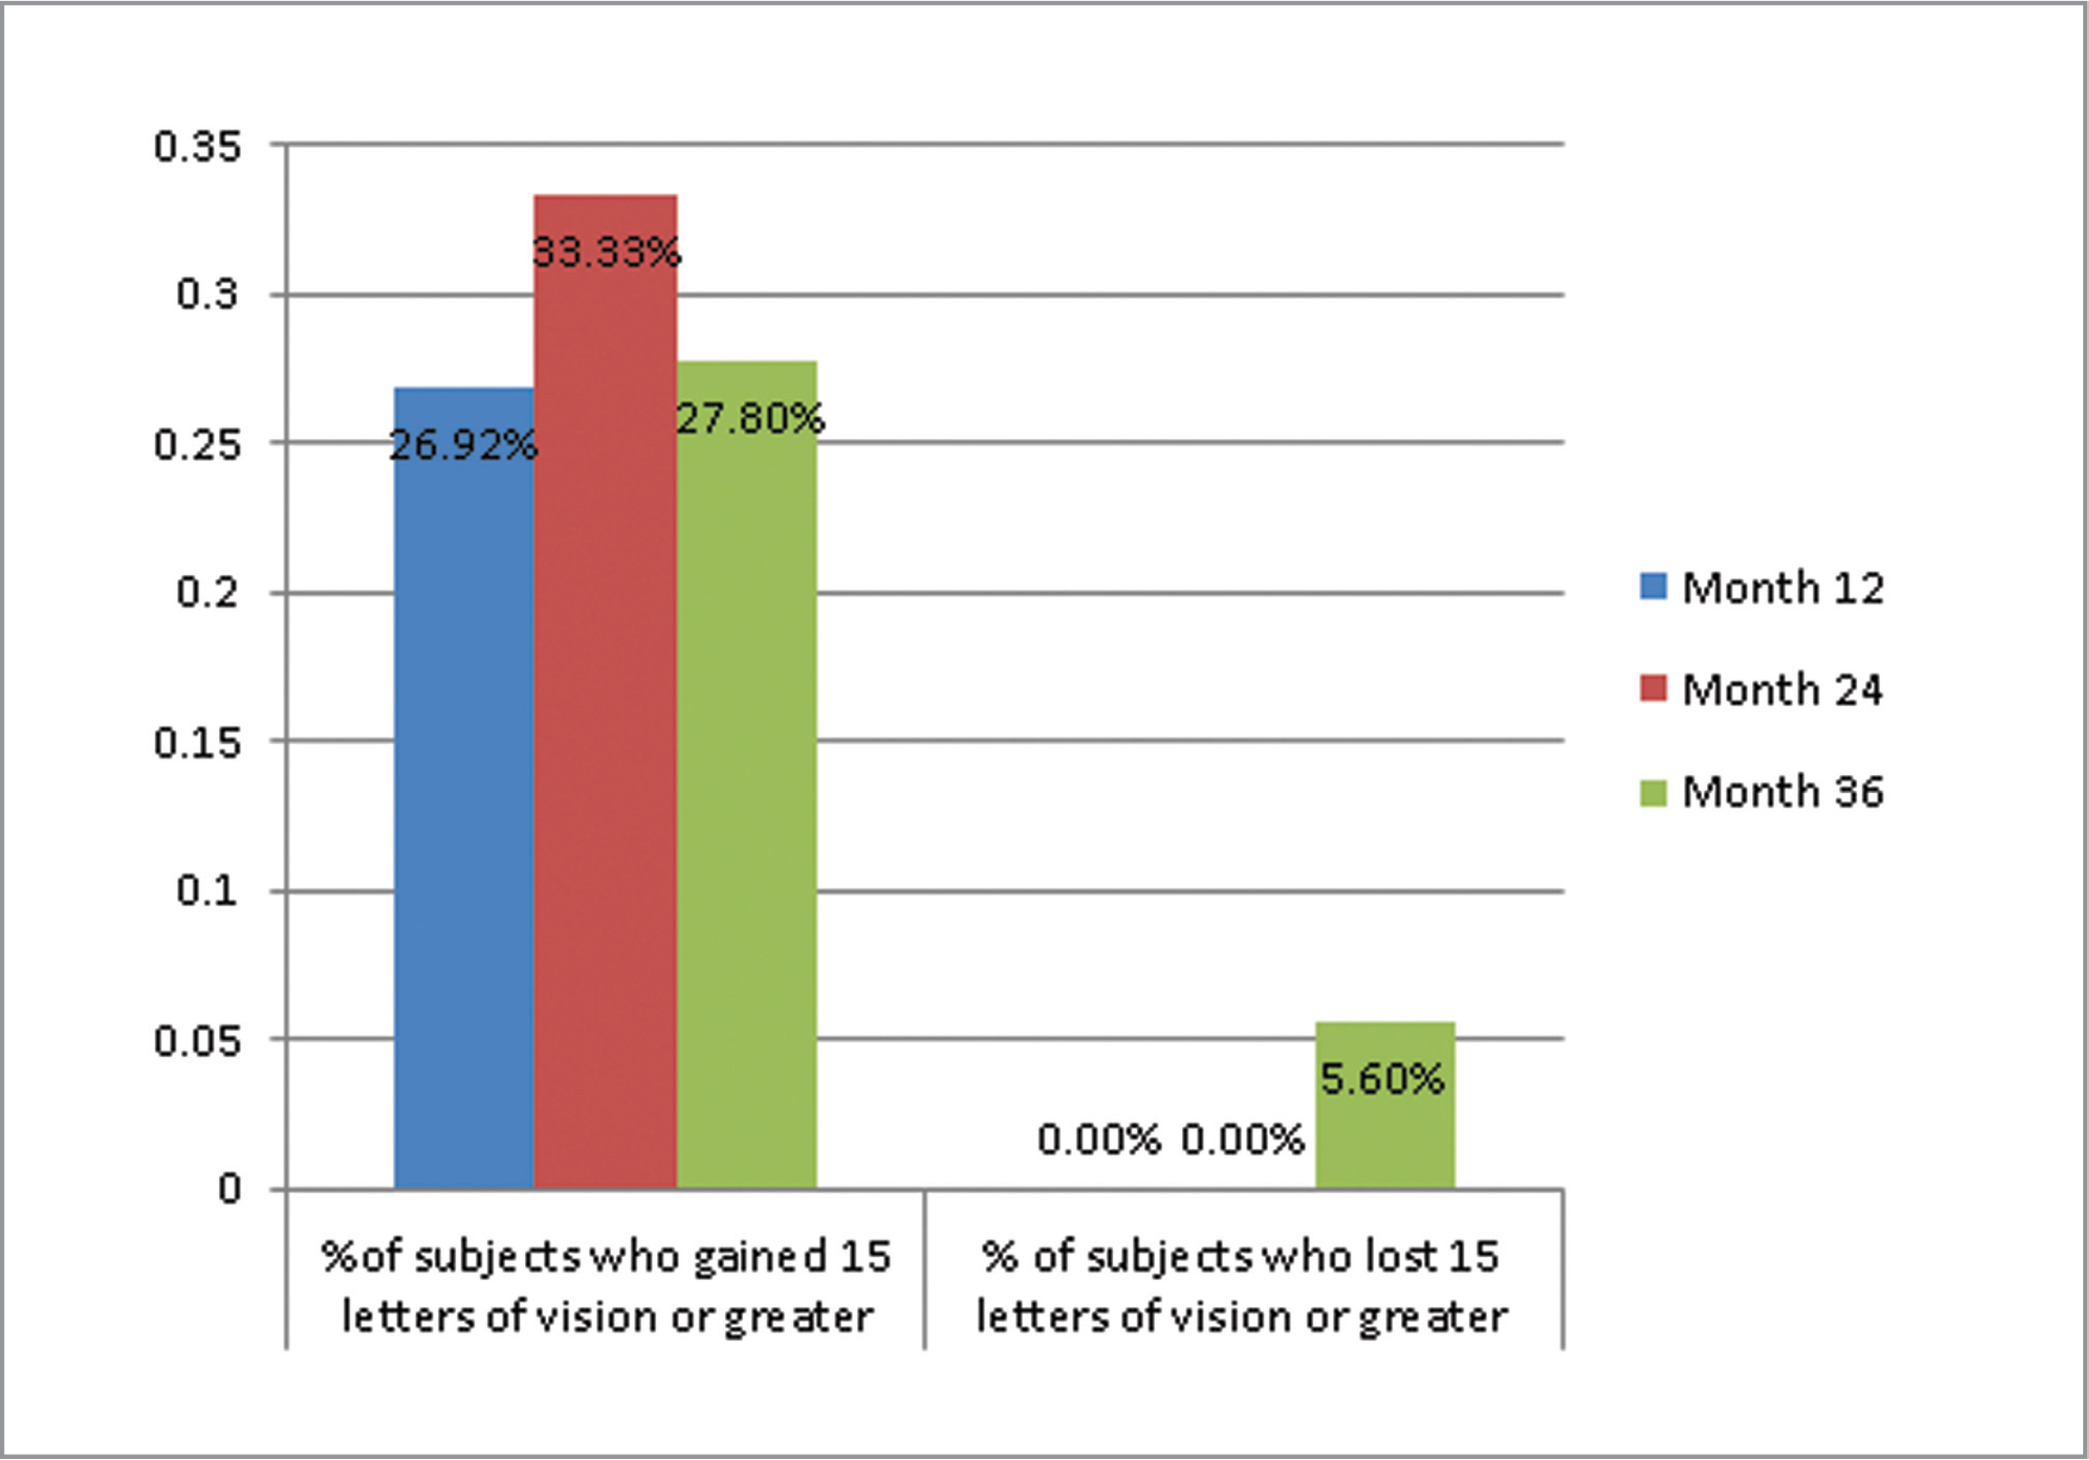 Percentage of subjects who gained 15 letters of vision or greater and percentage of subjects who lost 15 letters of vision or greater during ASSESS study years 1, 2, and 3.